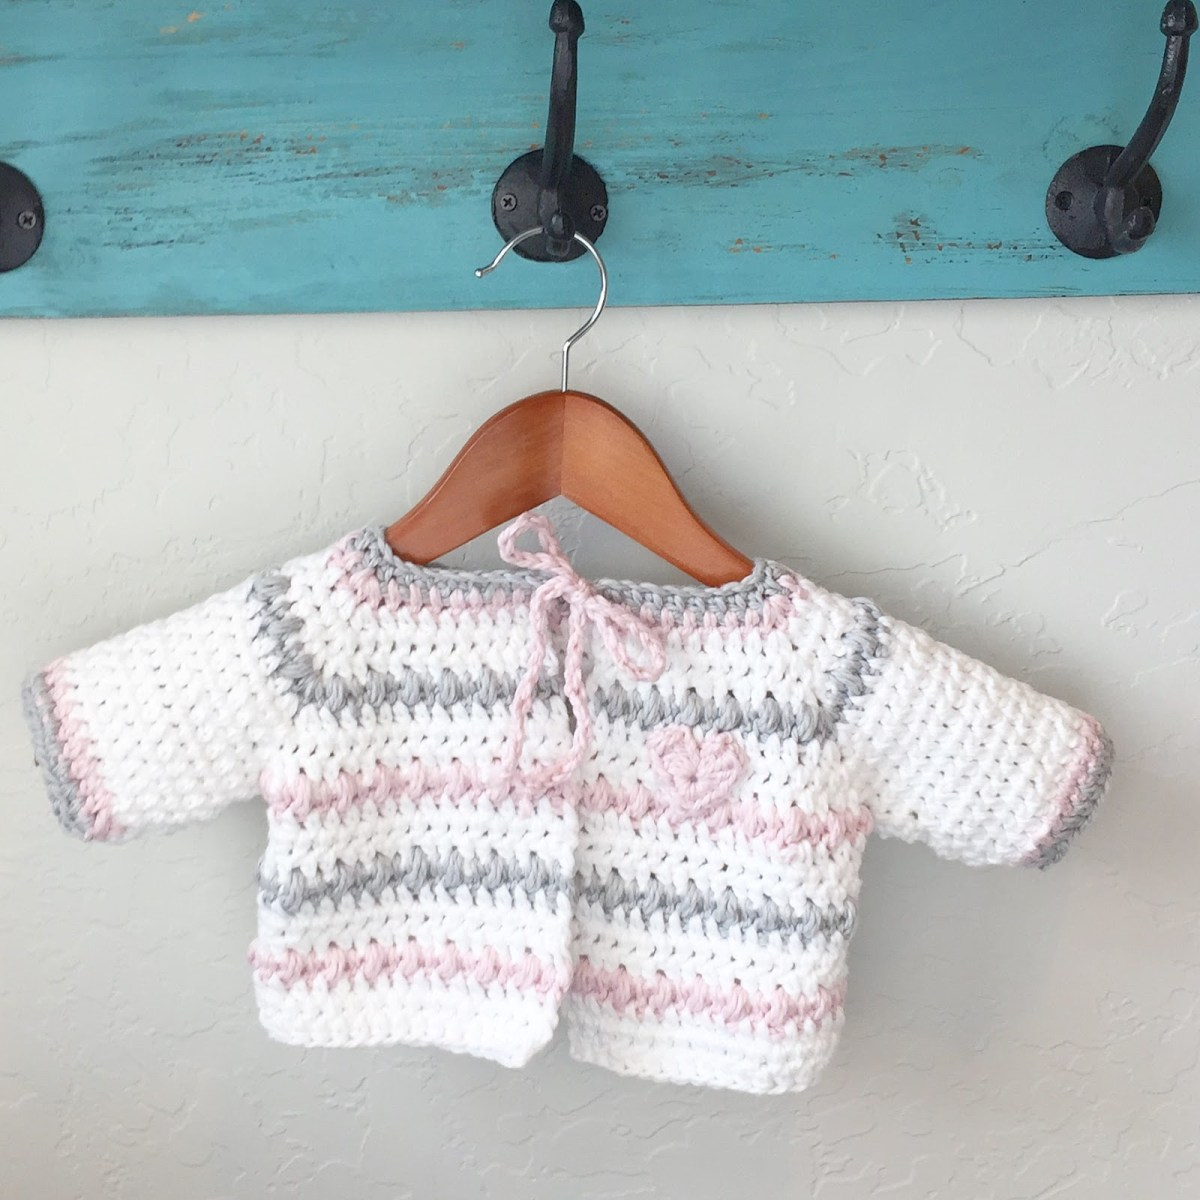 Crochet Baby Sweater Patterns Crochet Ba Sweater In White Pink And Gray Daisy Farm Crafts